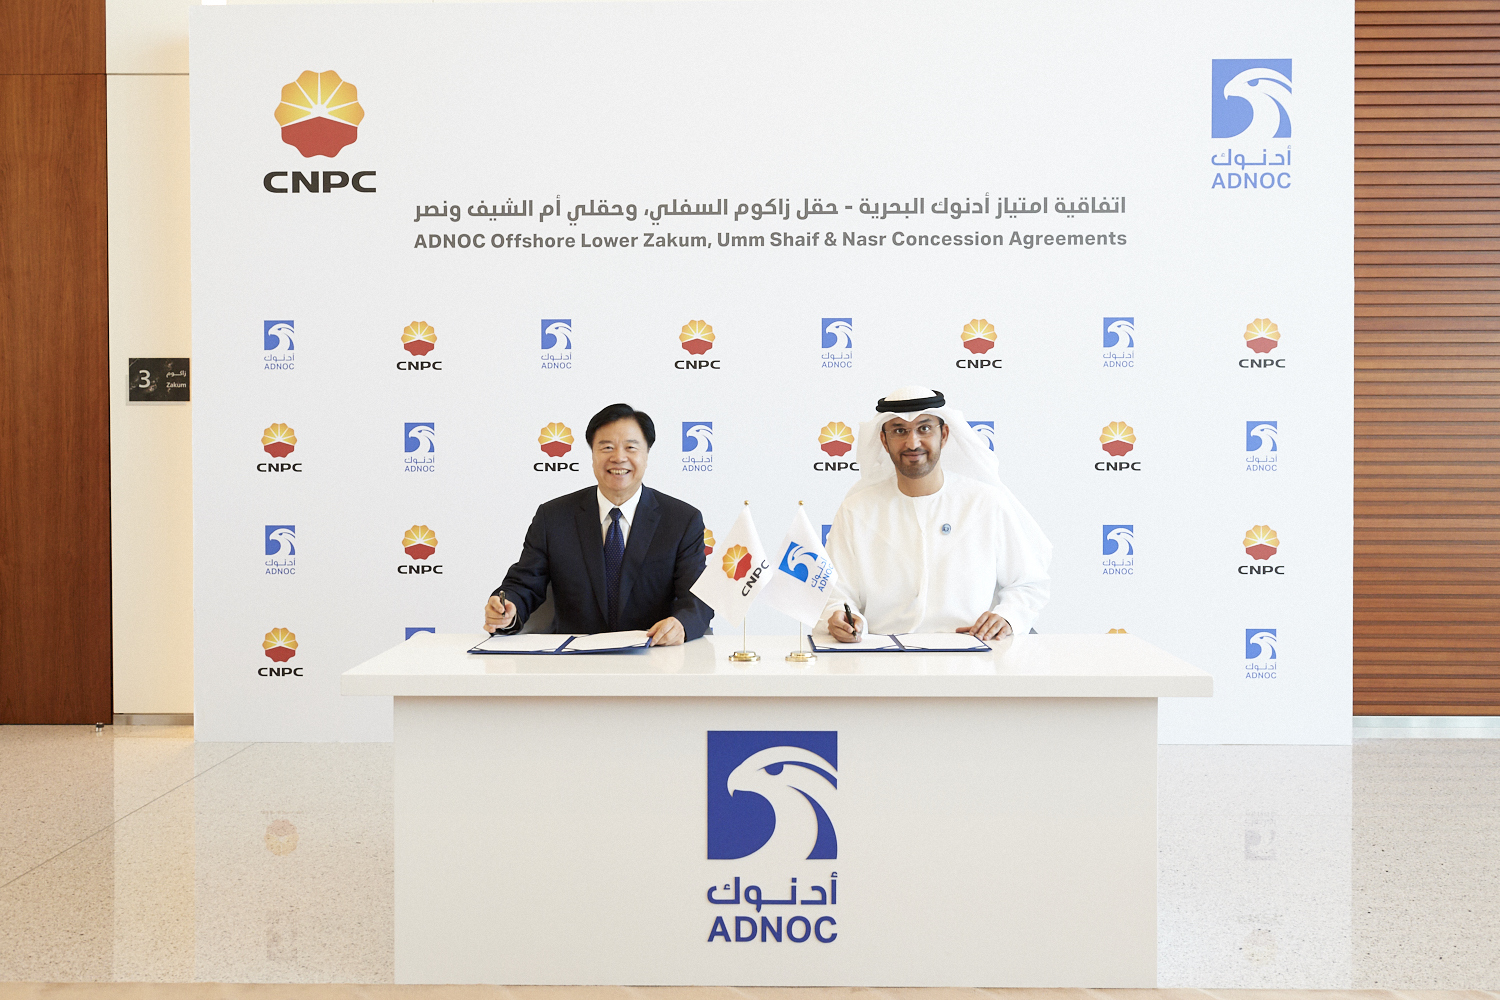 ADNOC Signs Offshore Concessions With CNPC Strengthening Ties With